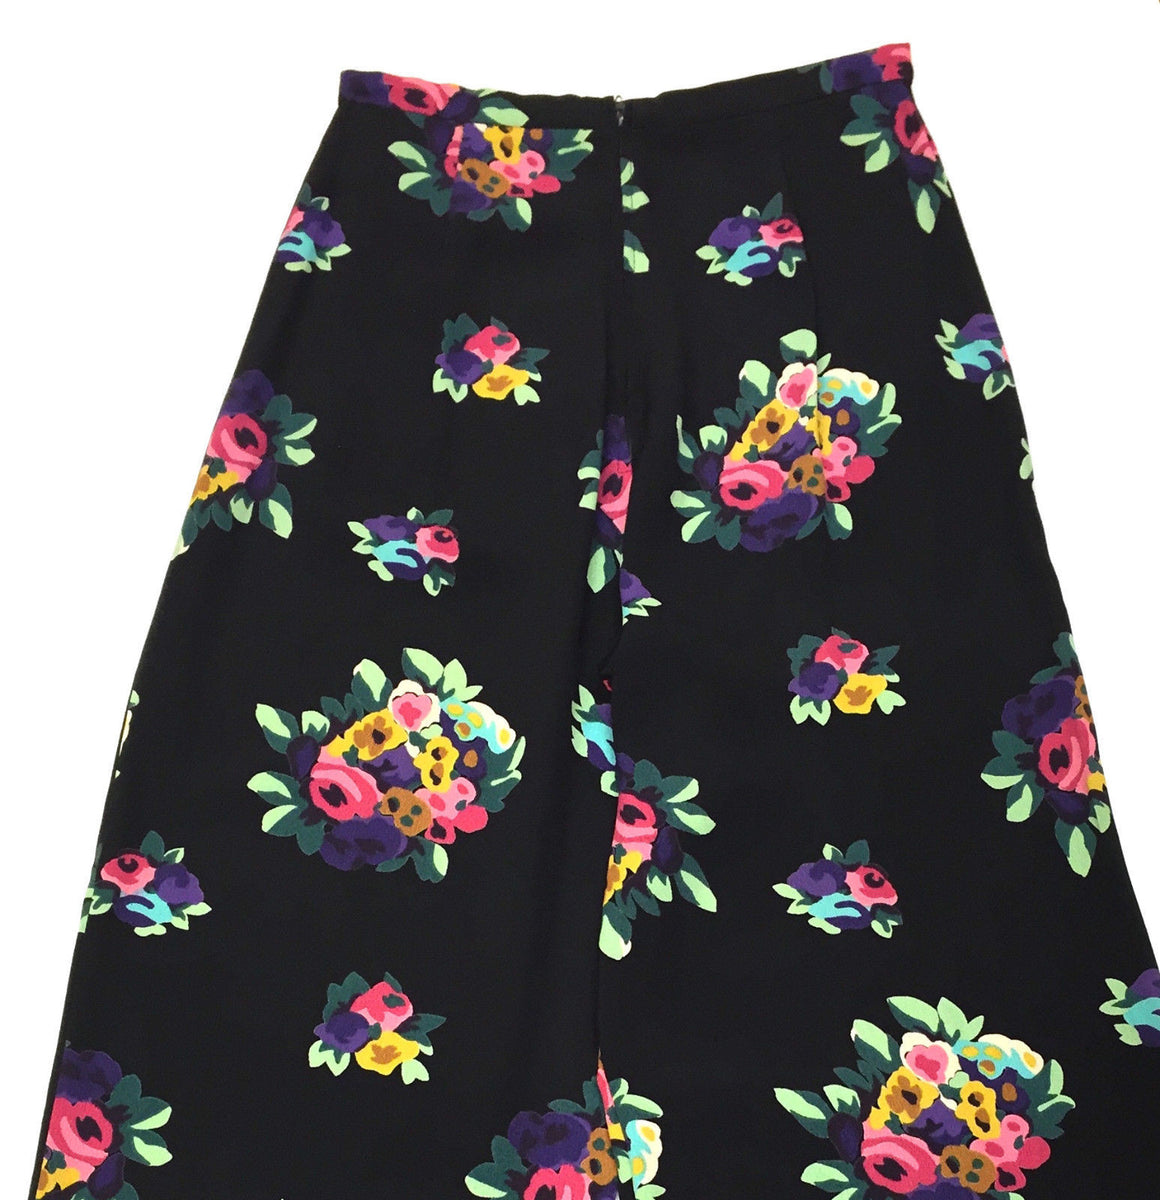 bisbiz.com BETSY JOHNSON Black/Multi-color Floral-Print Wide Leg Casual Pants Size: Small - Bis Luxury Resale